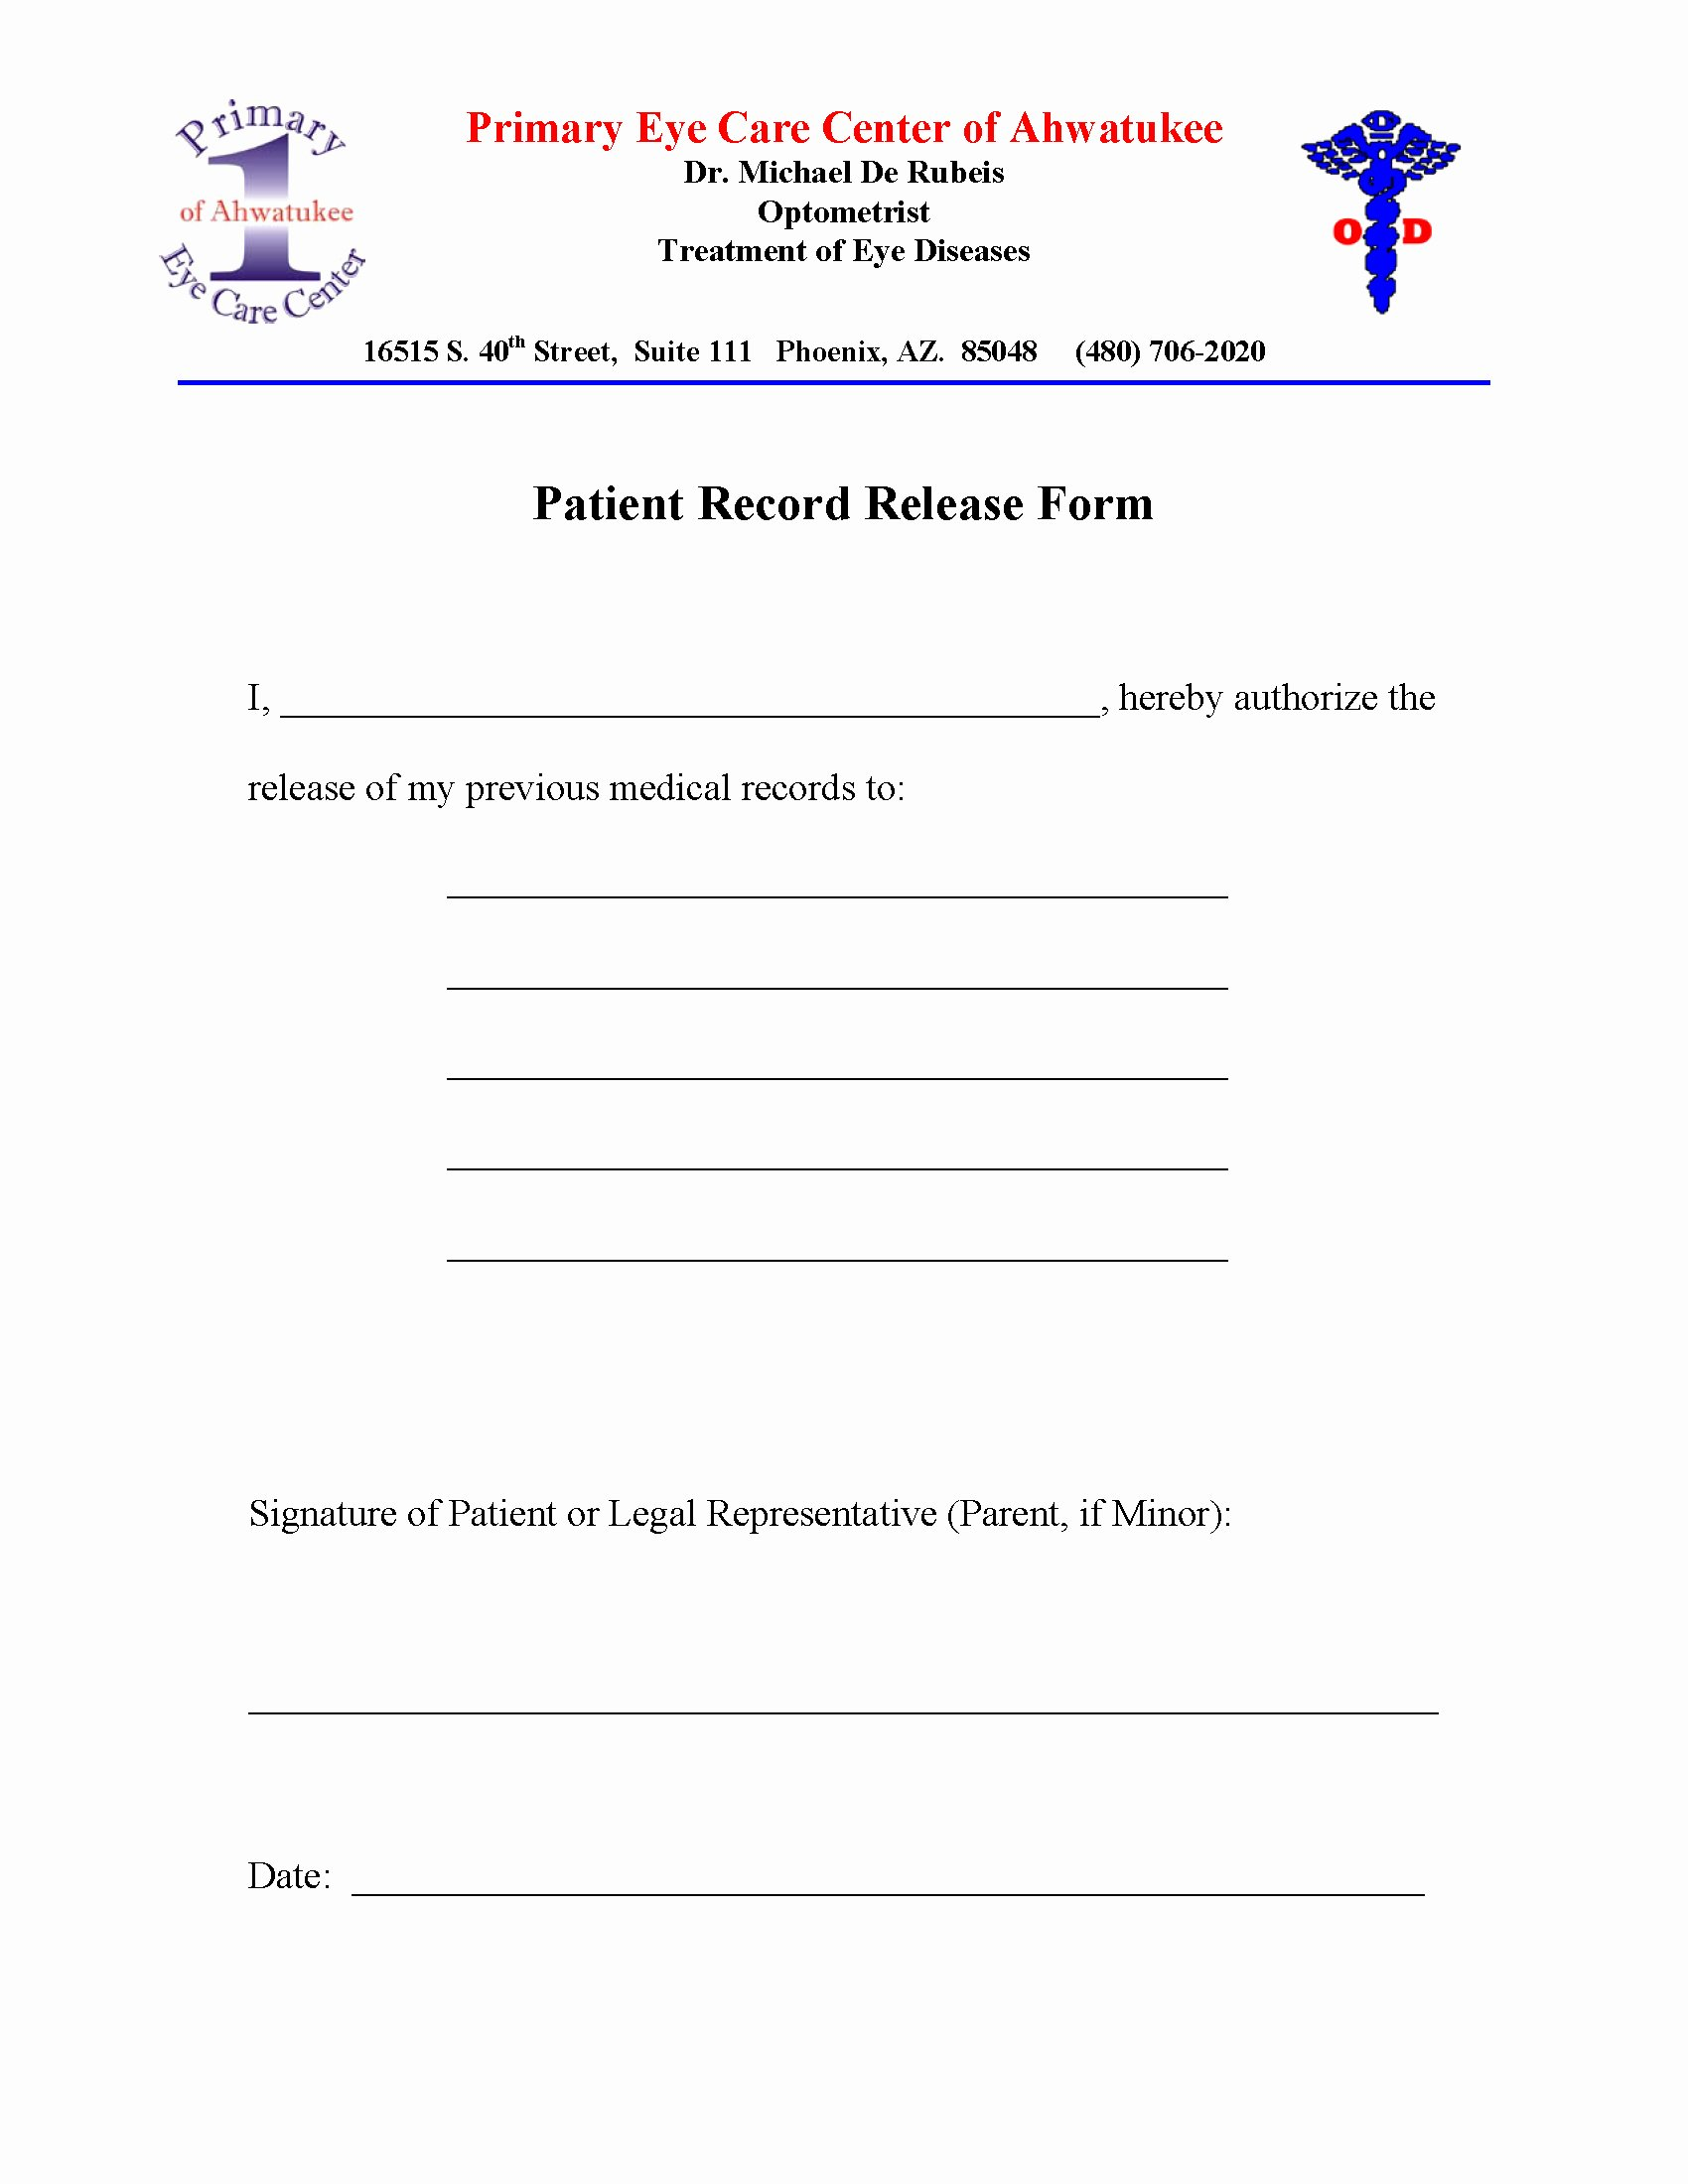 Hipaa Release form Template Unique Medical Records Release Letter Template Samples